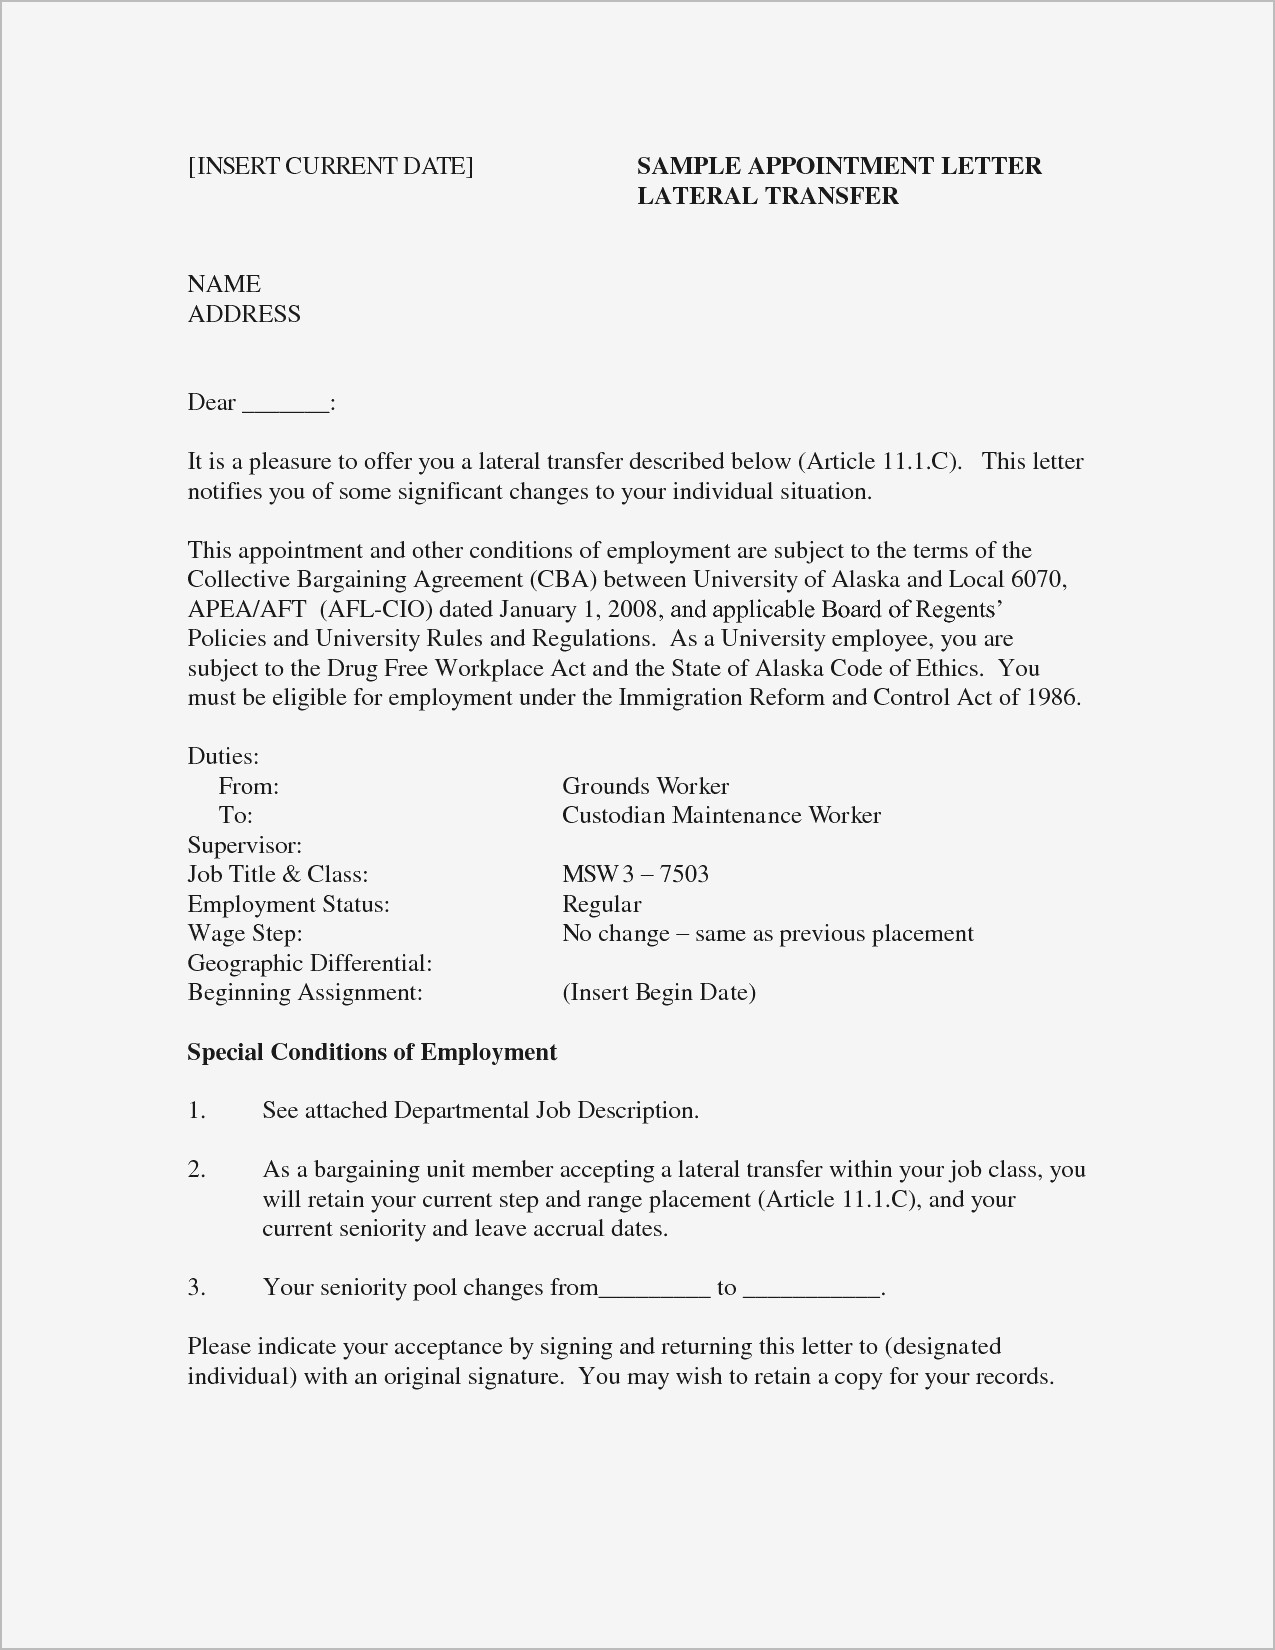 Conference Welcome Letter Template - Recordplayerorchestra Free Resume Template